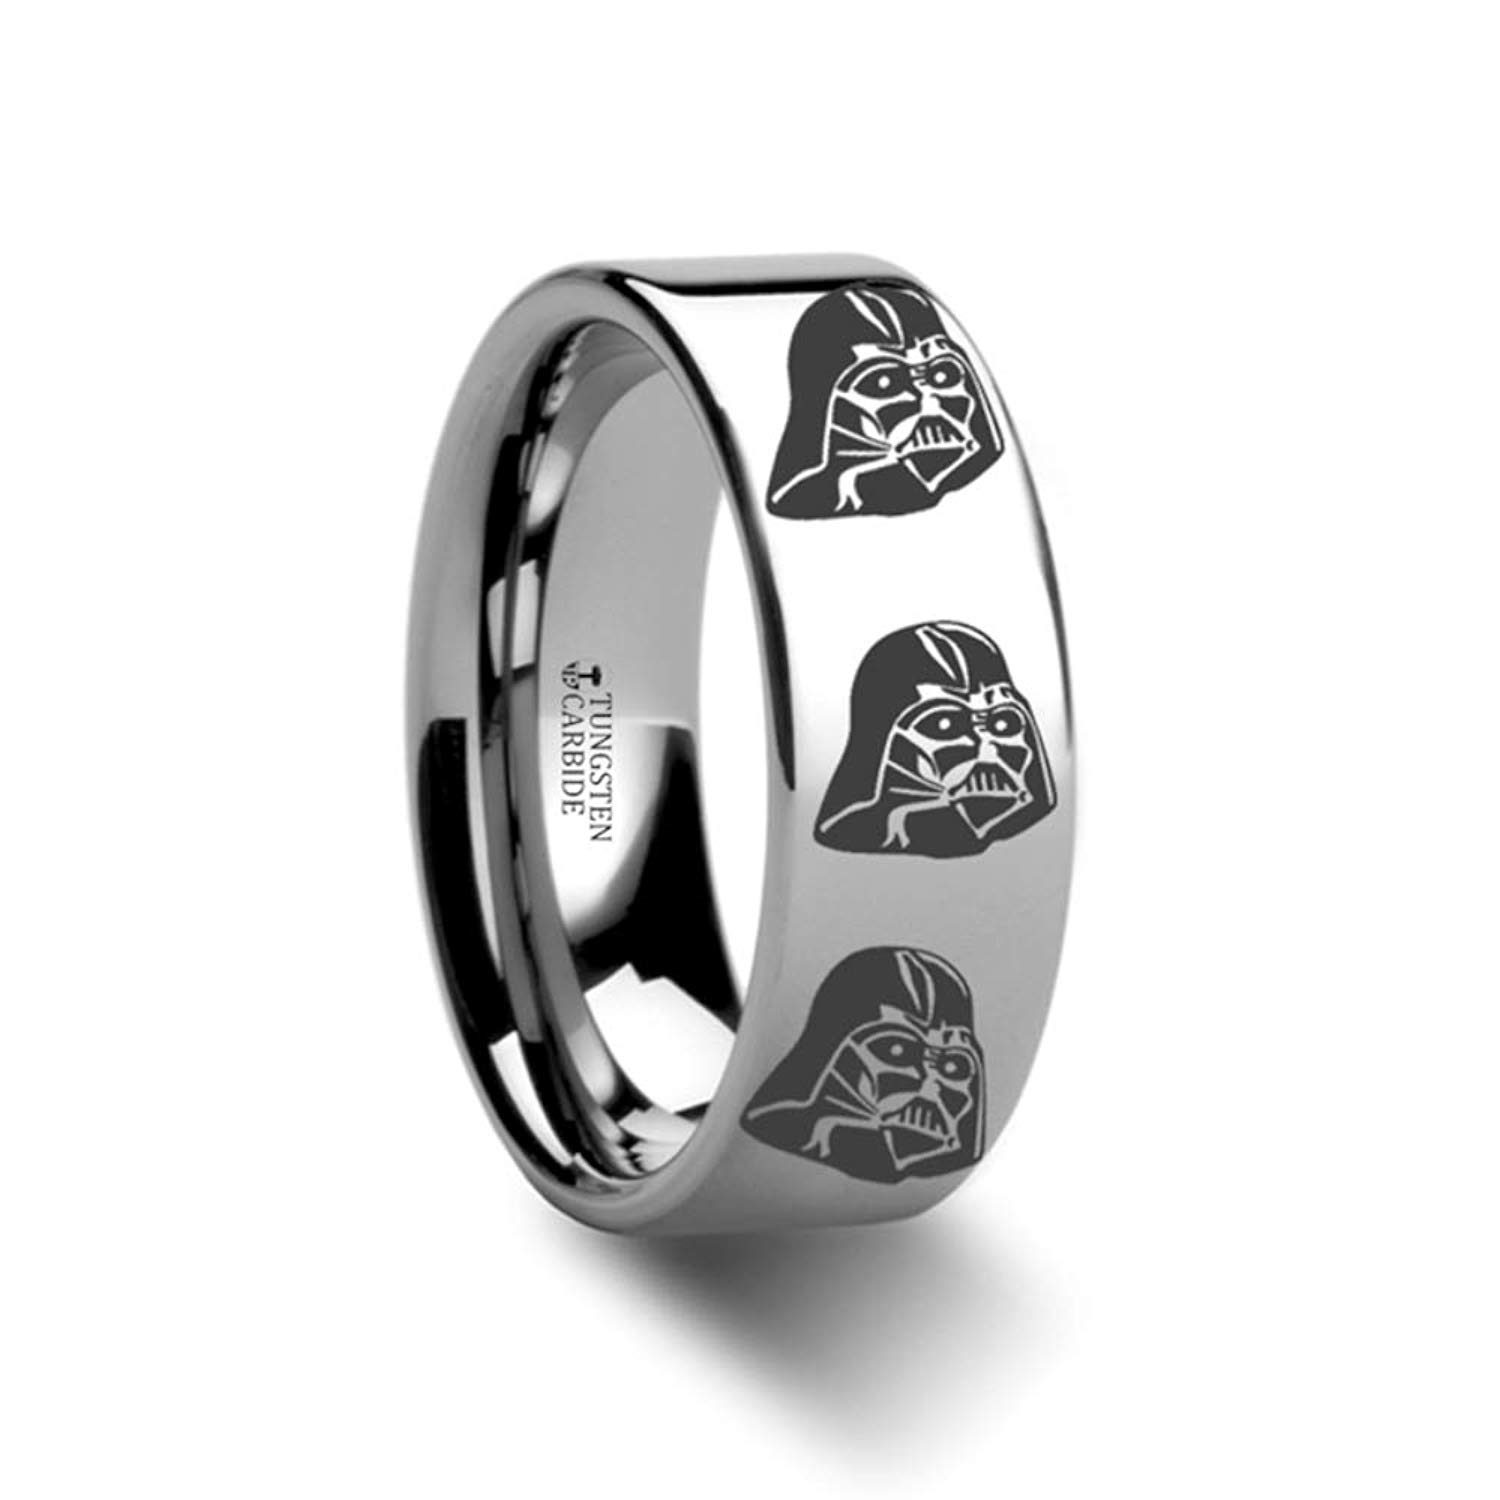 Thorsten Star Wars Tie Fighter X-Wing Design Ring 12mm Black Tungsten Wedding Band Ring from Roy Rose Jewelry